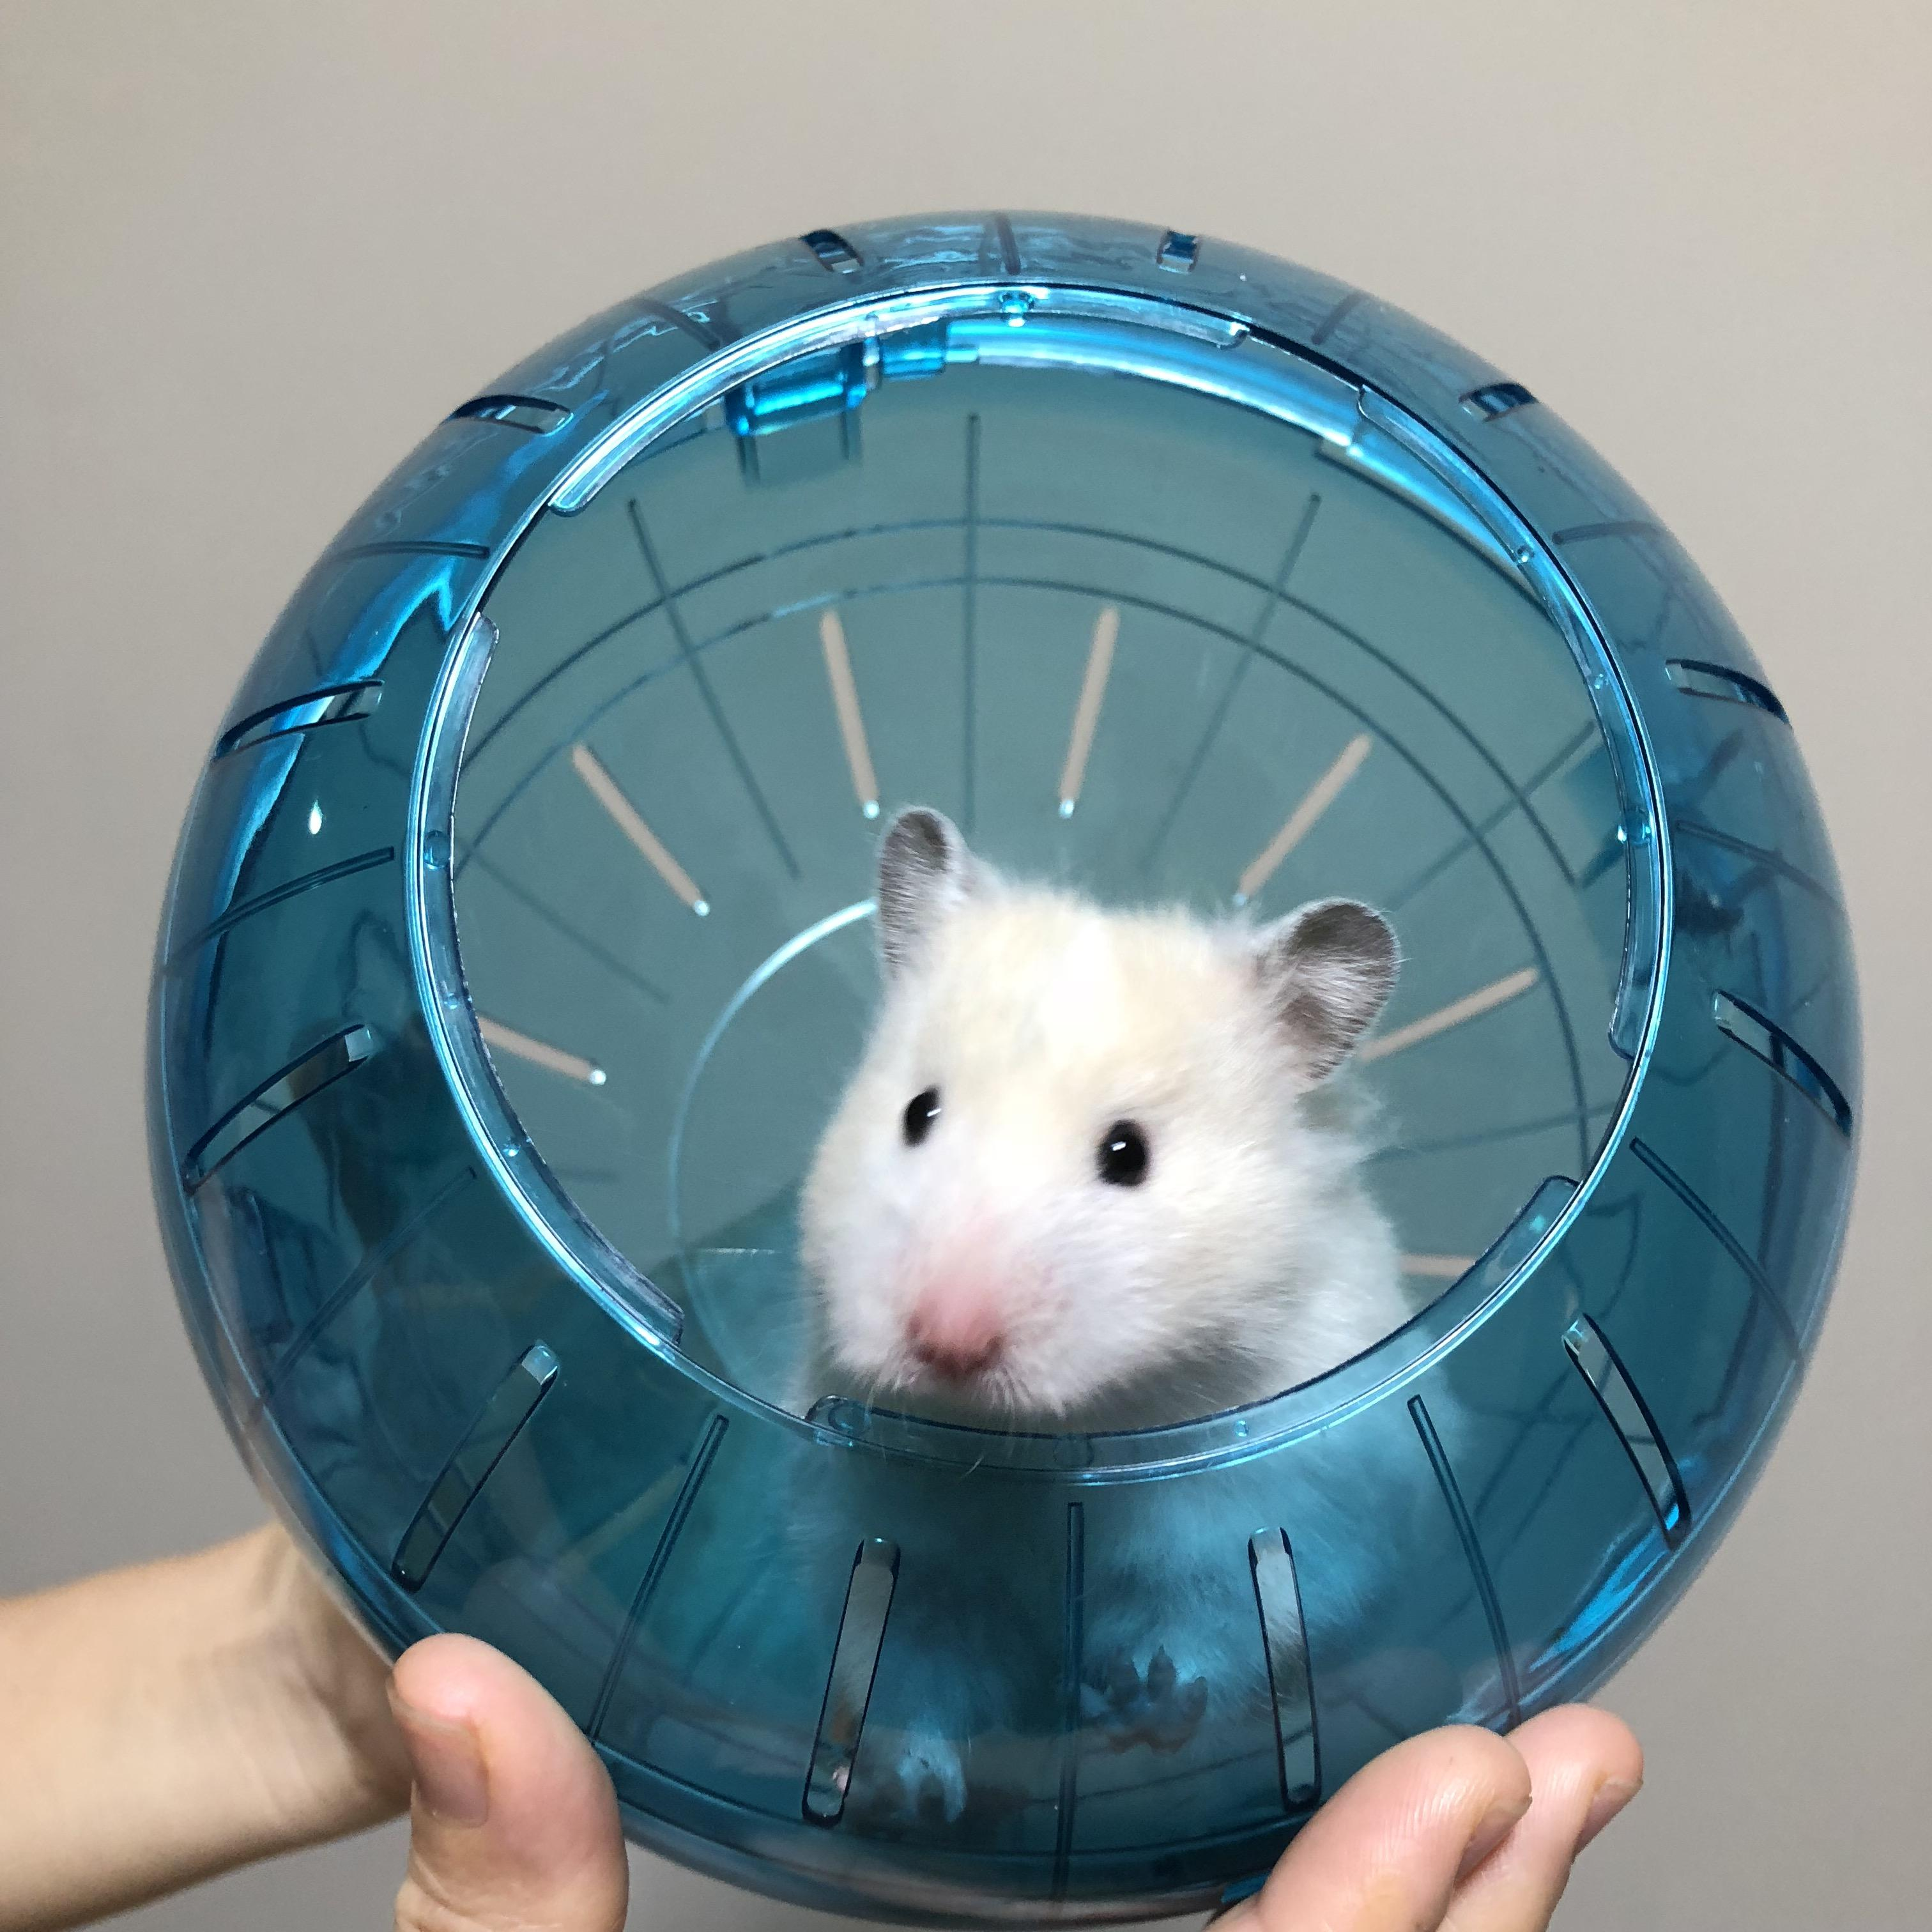 Are hamster balls good for hamsters? No, but heres a cute hamster